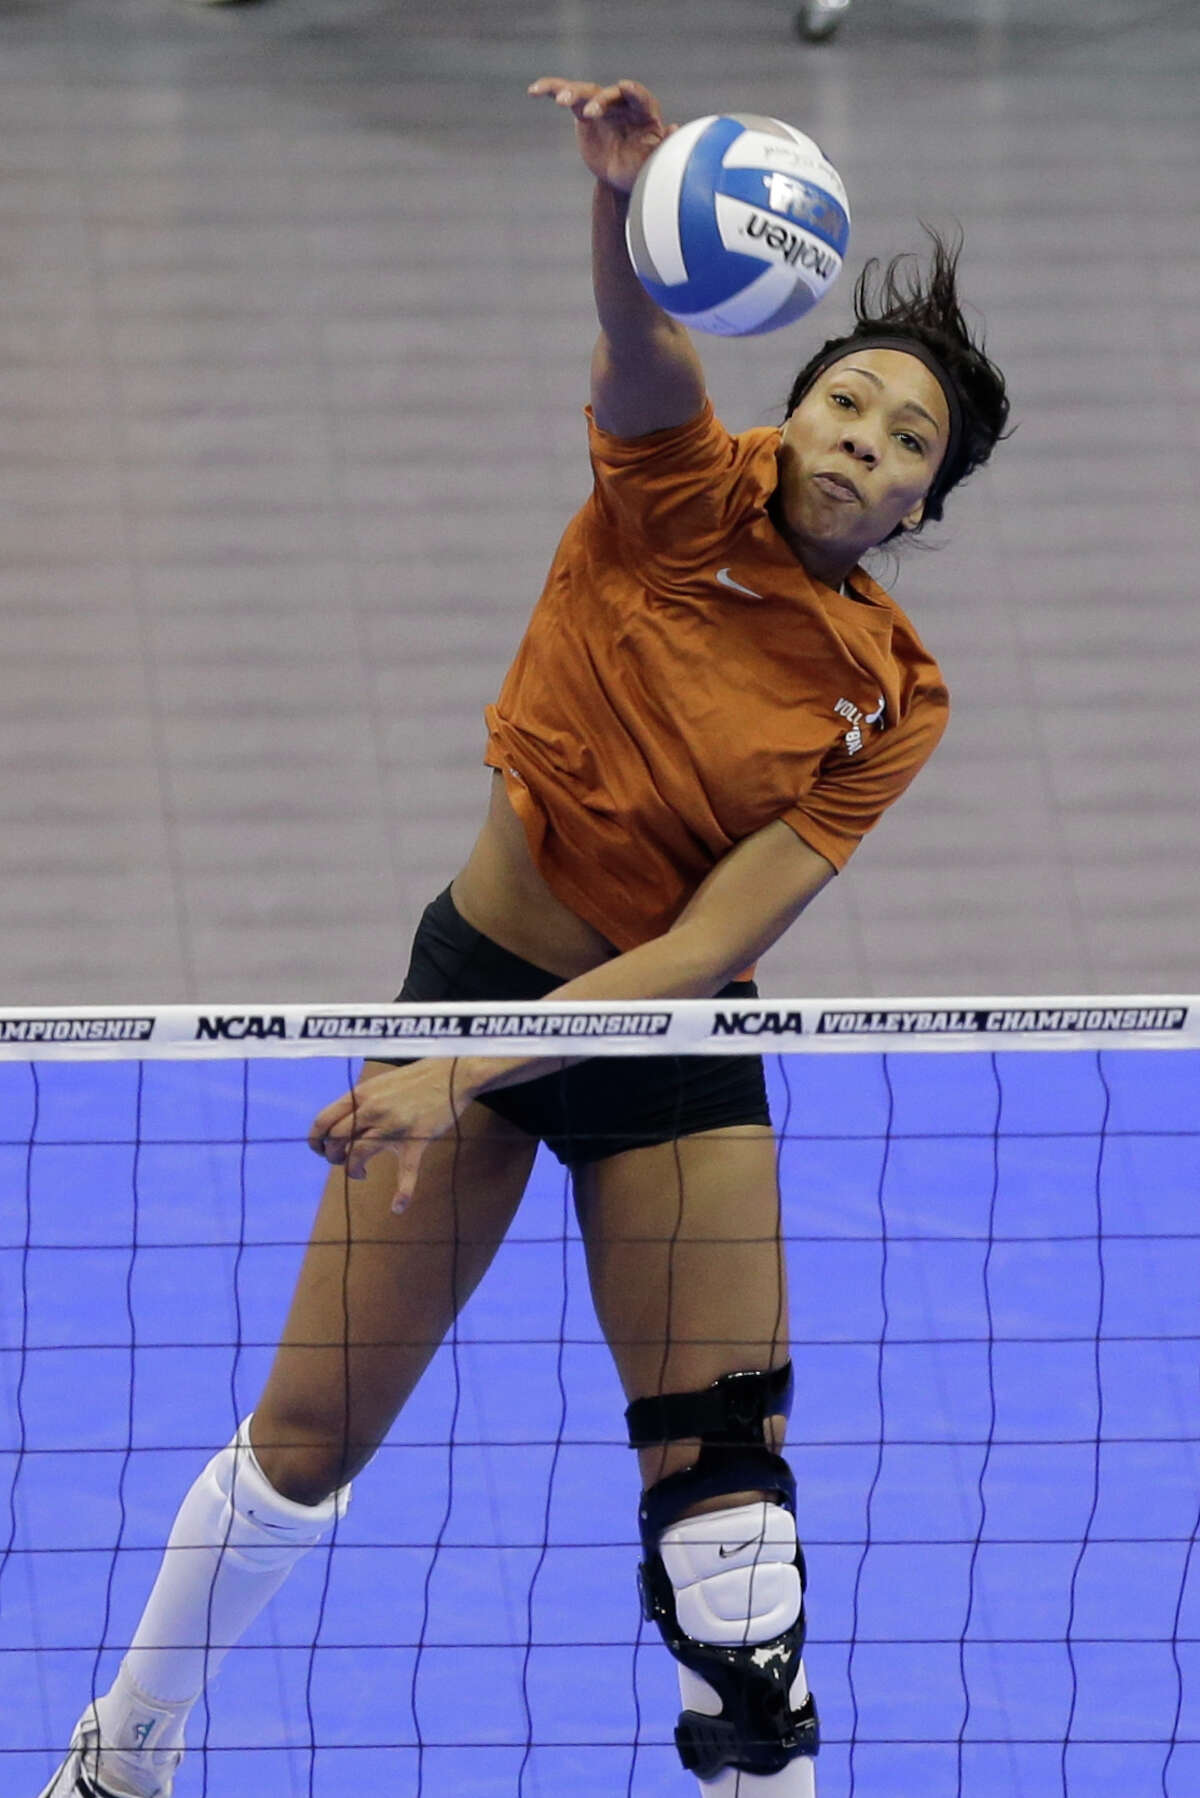 Texas' Khat Bell hits the ball over the net during practice in Lincoln, Neb., Thursday, Dec. 12, 2013. Texas plays American on Friday in the NCAA college volleyball Lincoln regional.